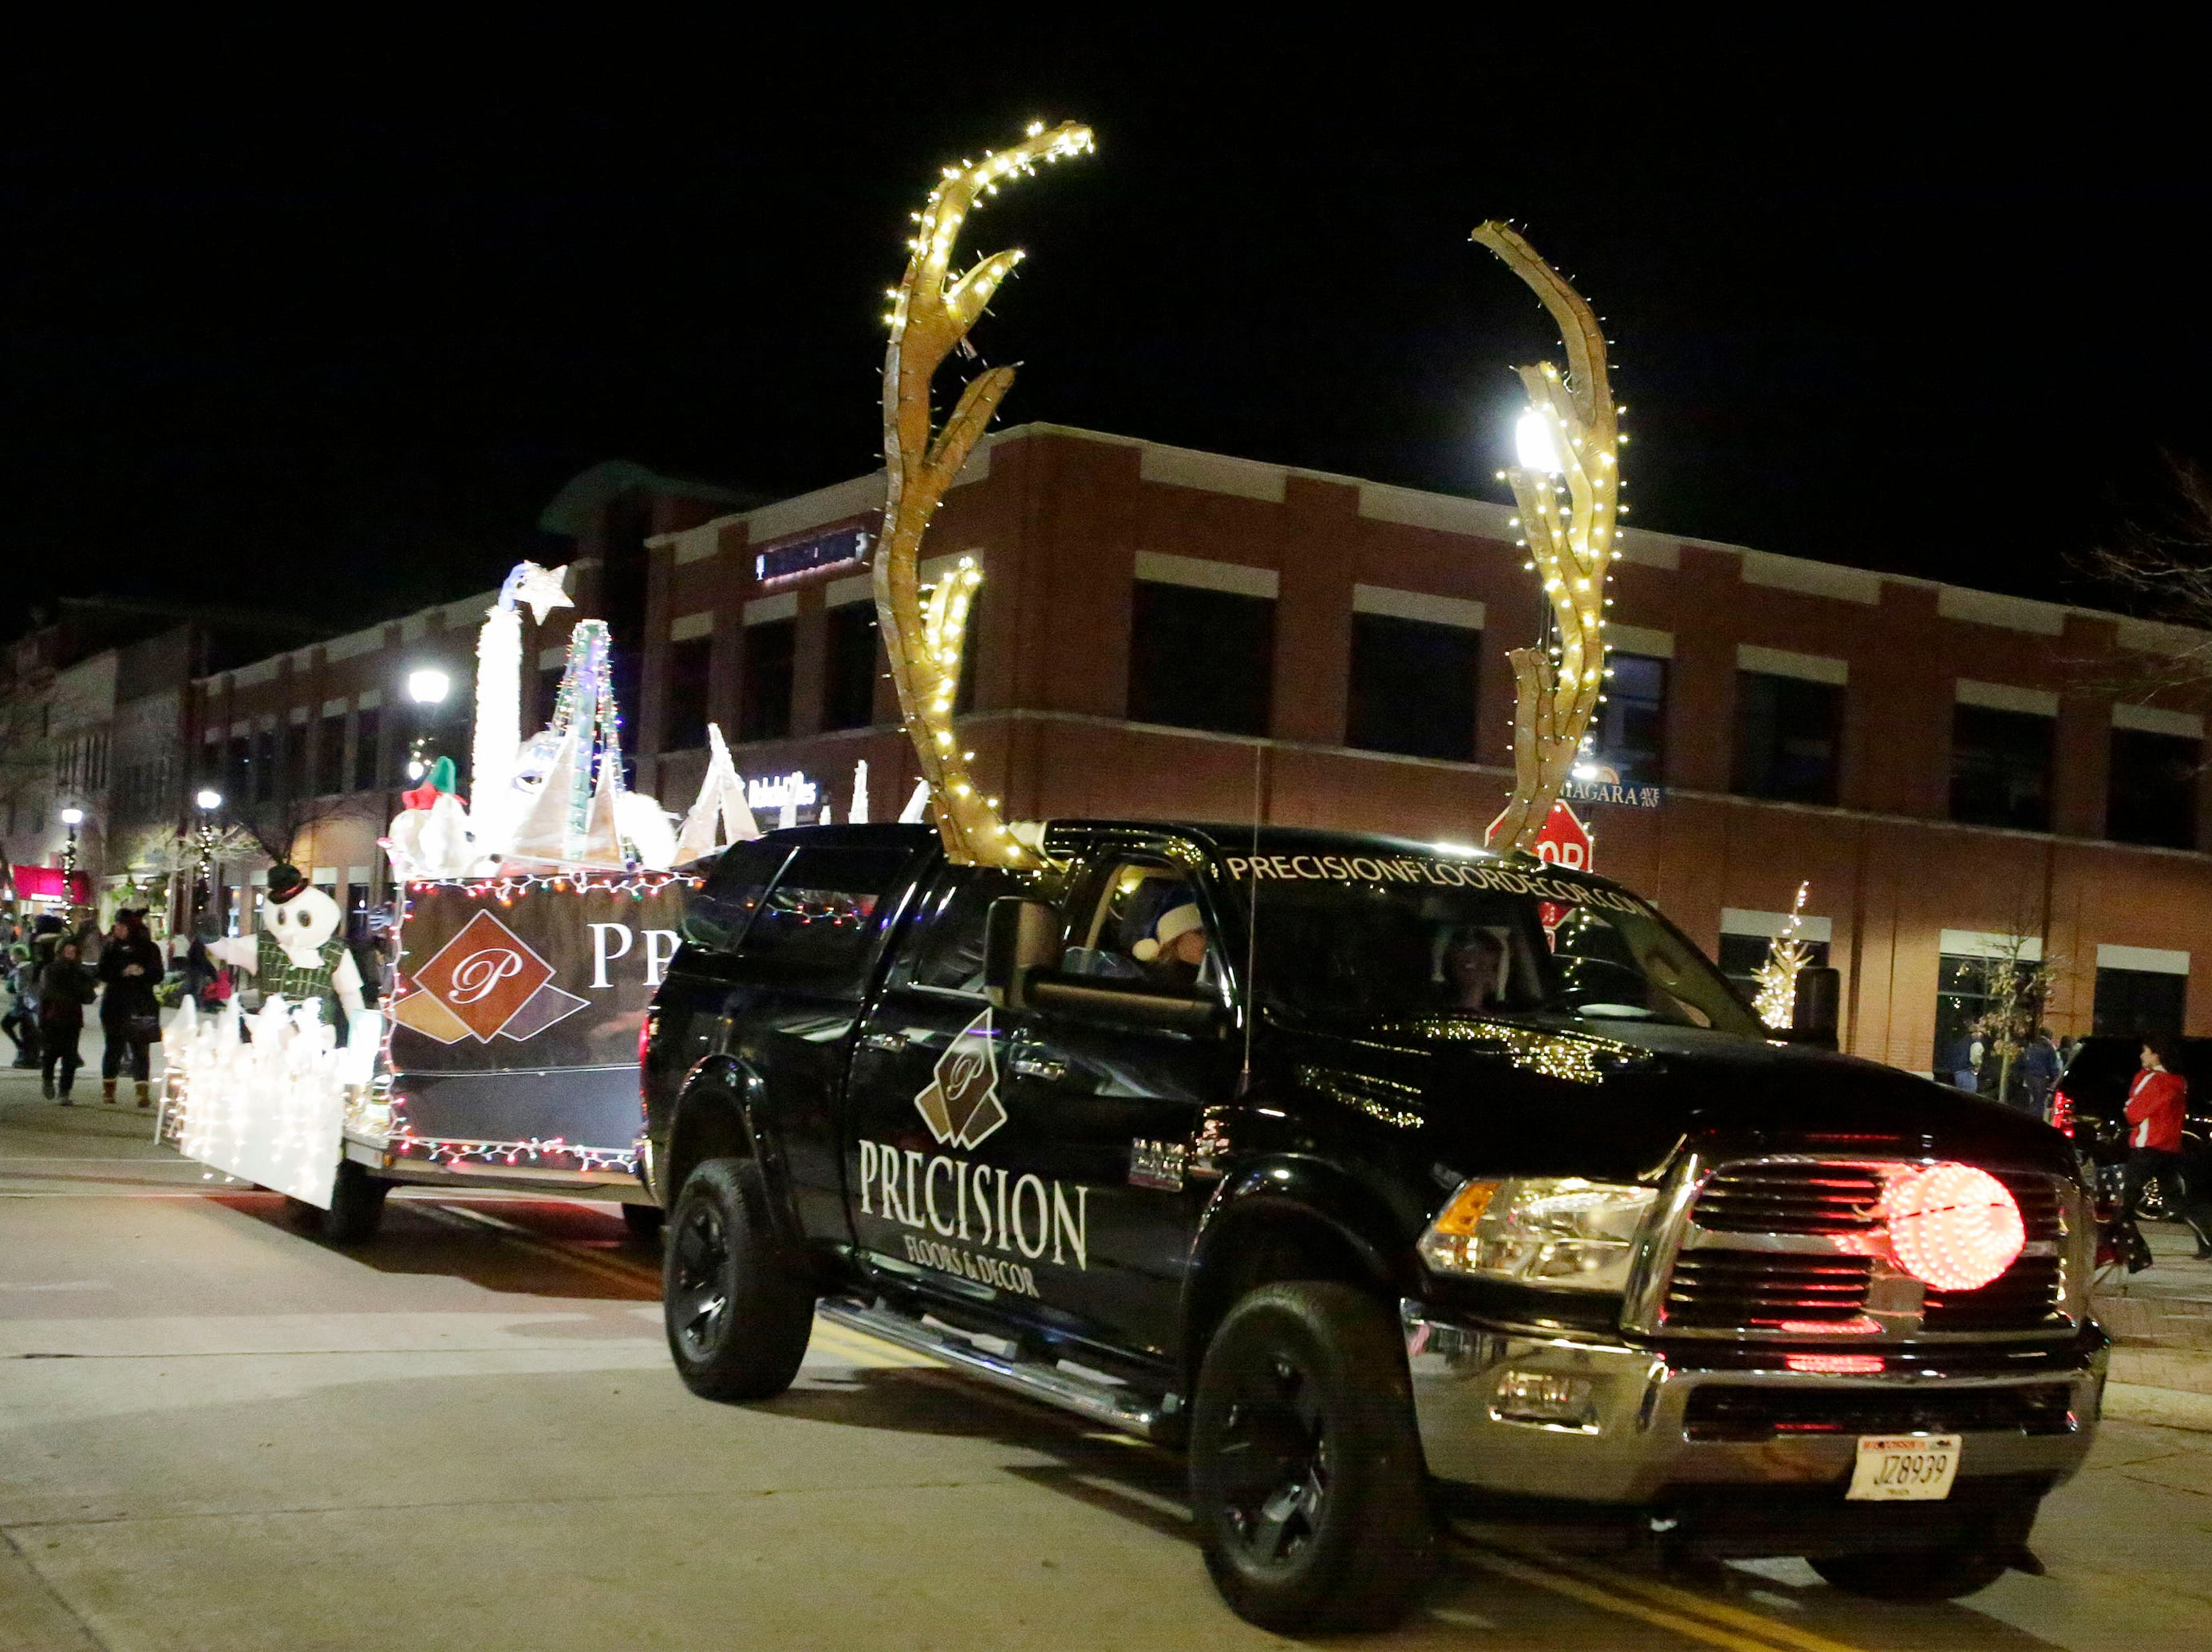 Precision Flooring and decor rolls down North 8th Street at the 26th Annual Jaycees Holiday Parade, Sunday, November 25, 2018 in Sheboygan, Wis.  The company's corporate entry came in first place.